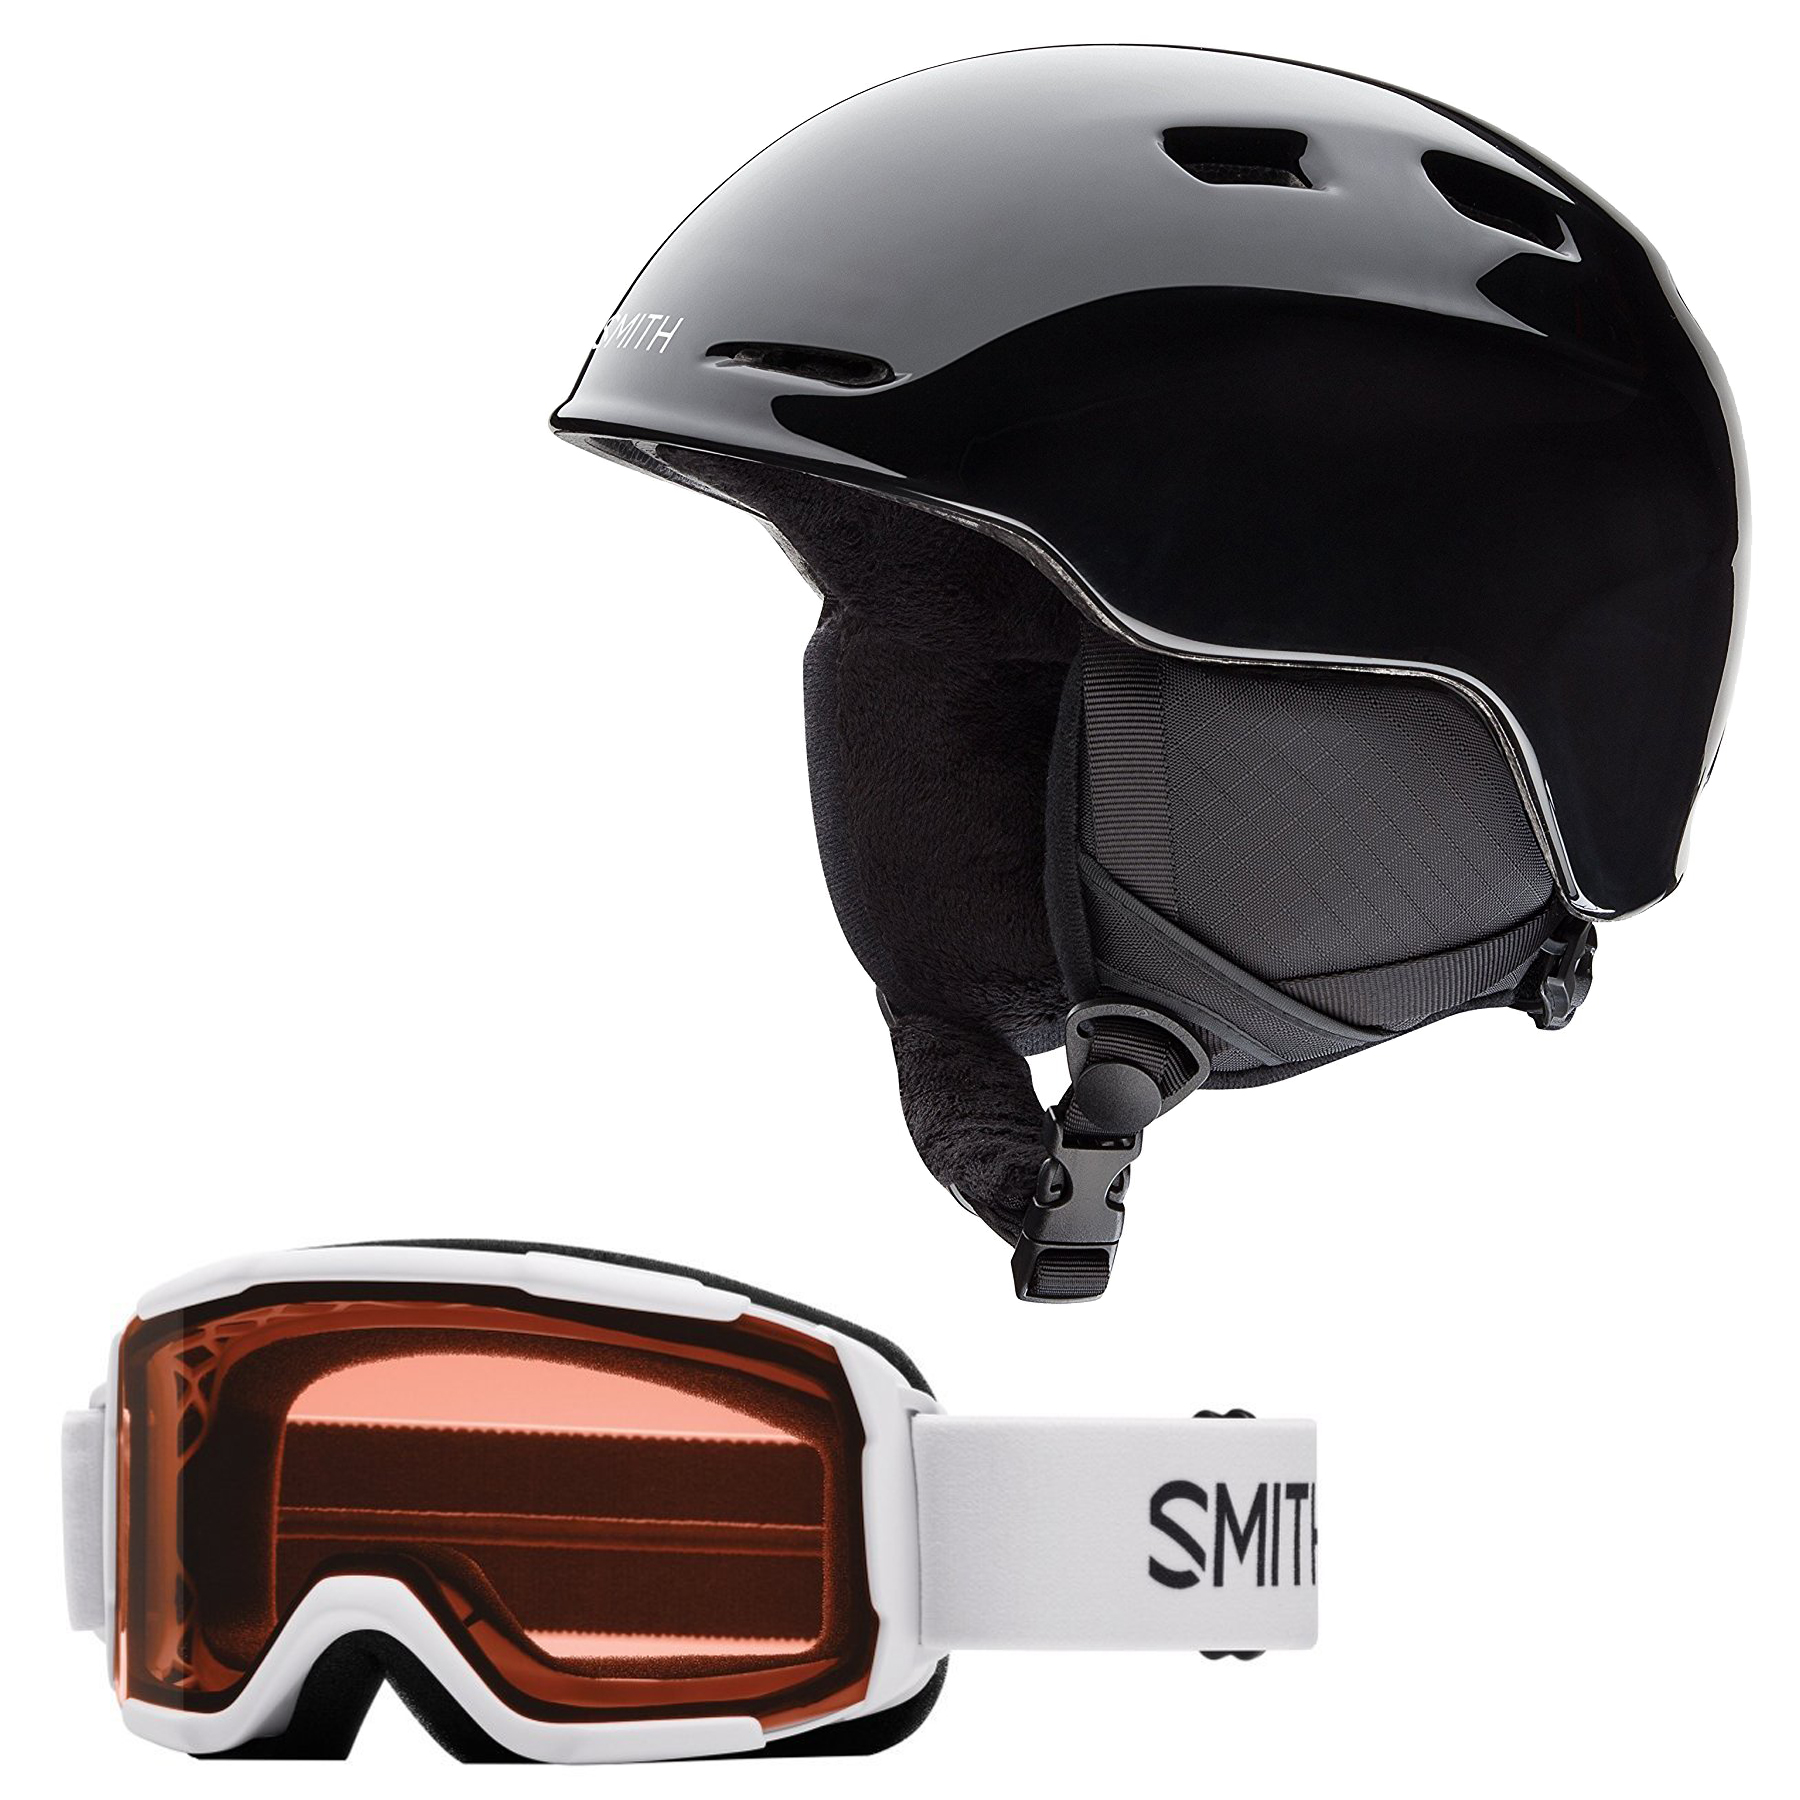 Smith Zoom Jr. Snow Helmet (Black, Small) with White Frame Daredevil Goggles by Smith Optics